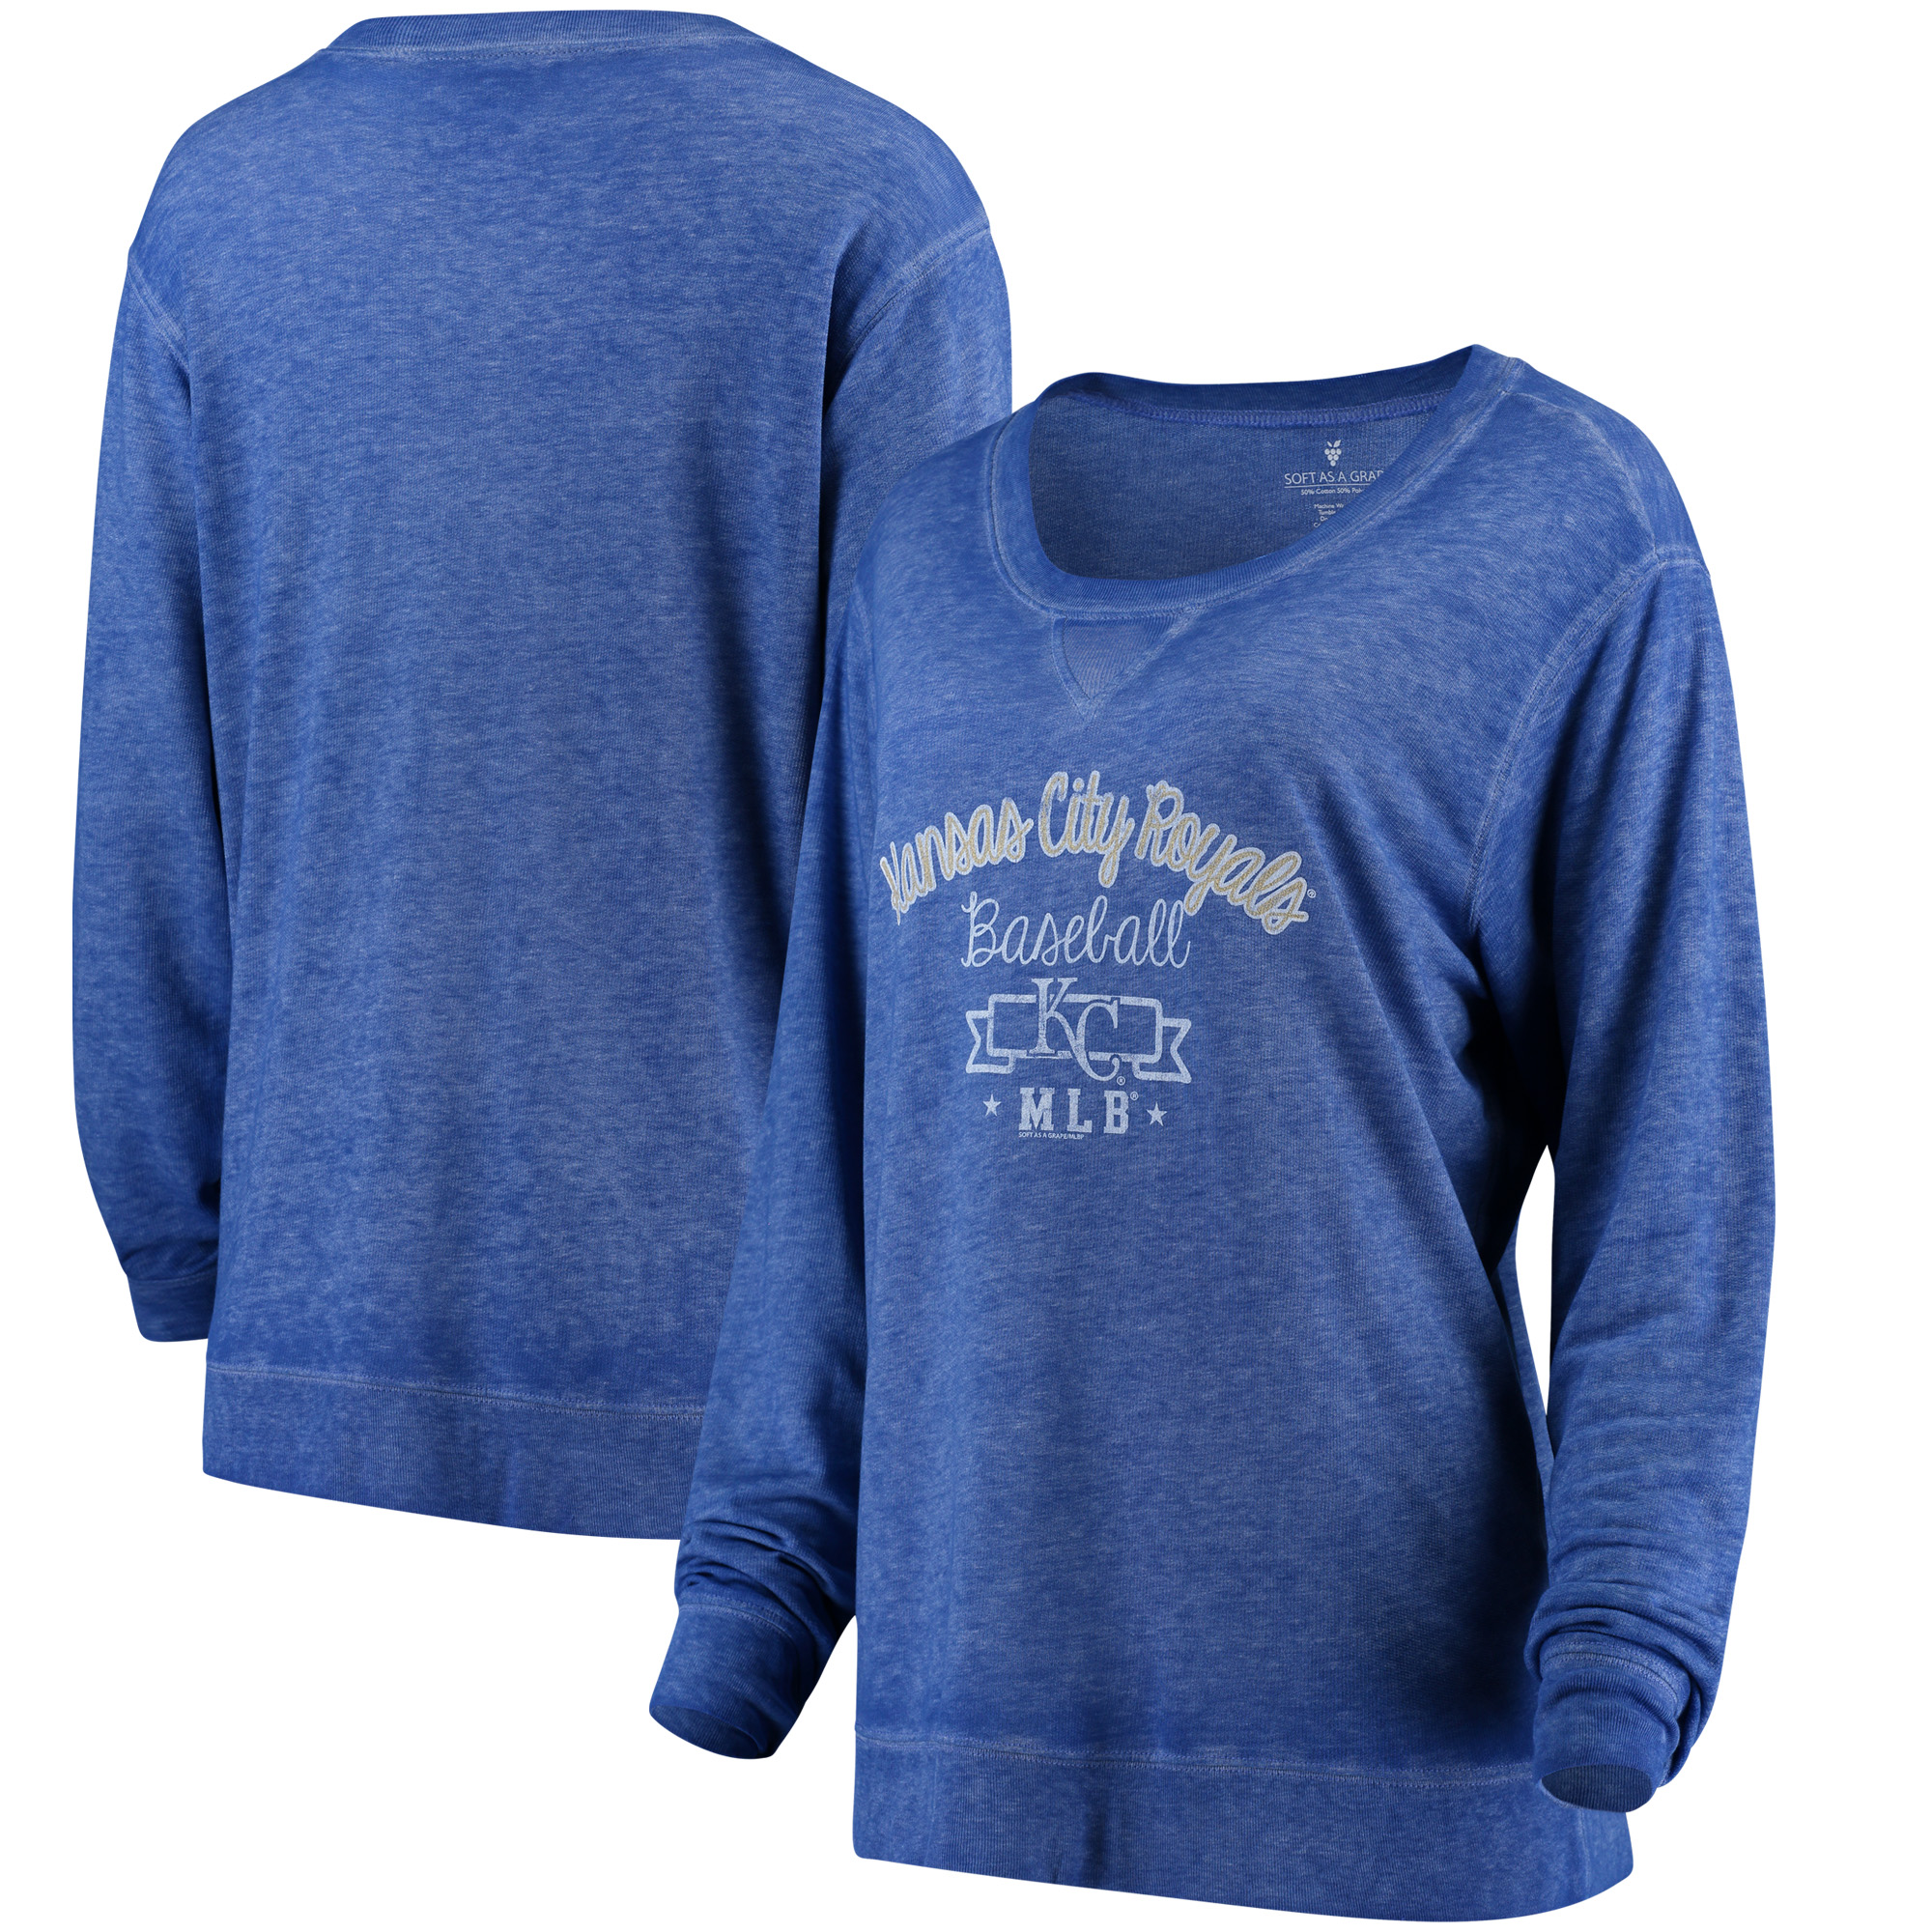 Kansas City Royals Soft as a Grape Women's Home Run Swing Sweatshirt - Royal